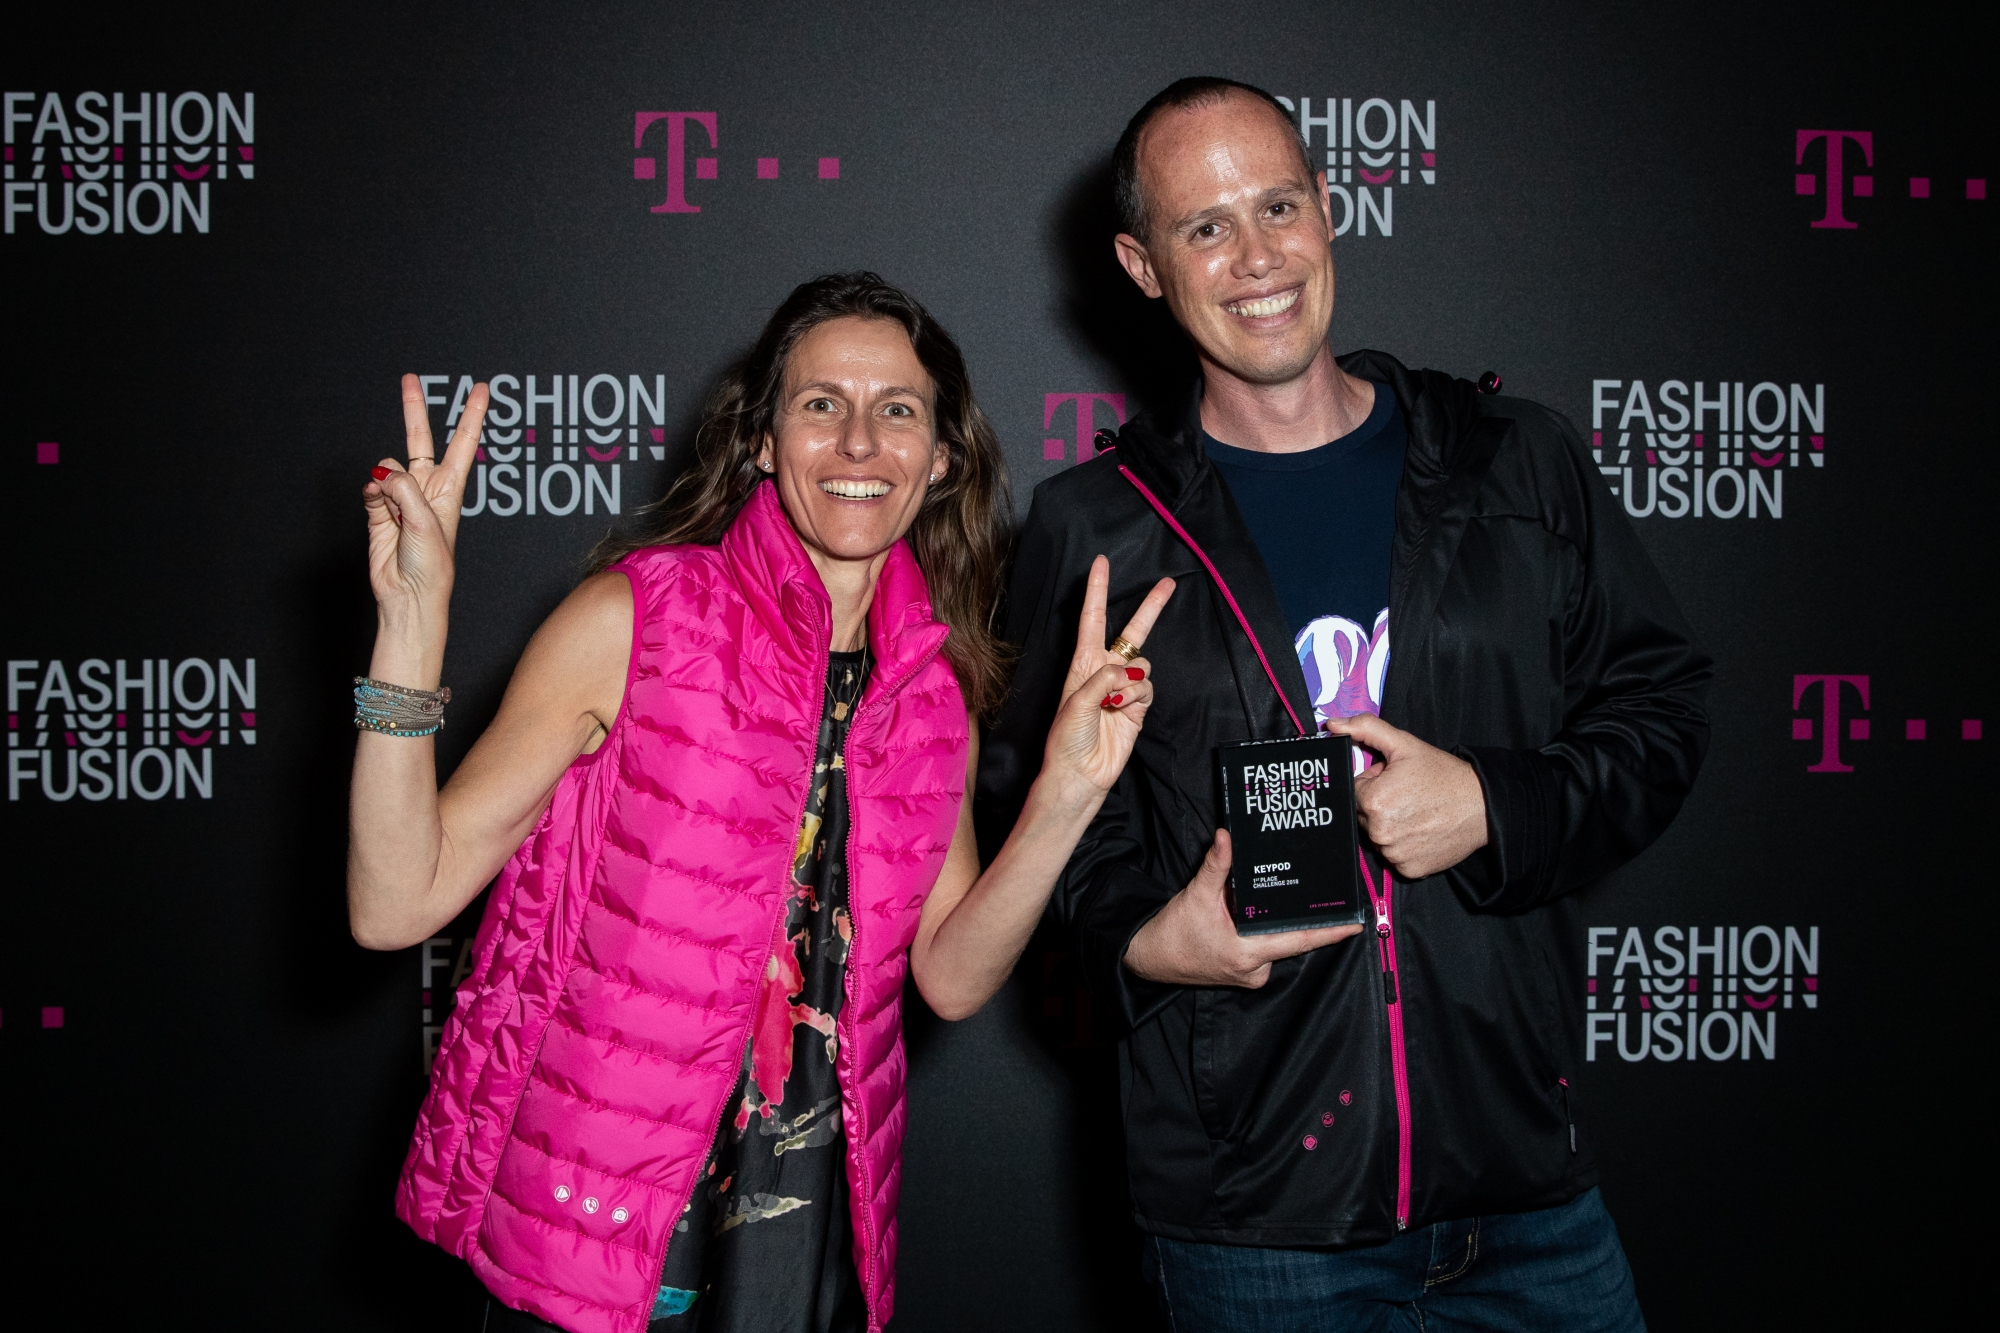 03072018_Telekom Fashion Fusion 2018_getty for Telekom Fashion Fusion_11